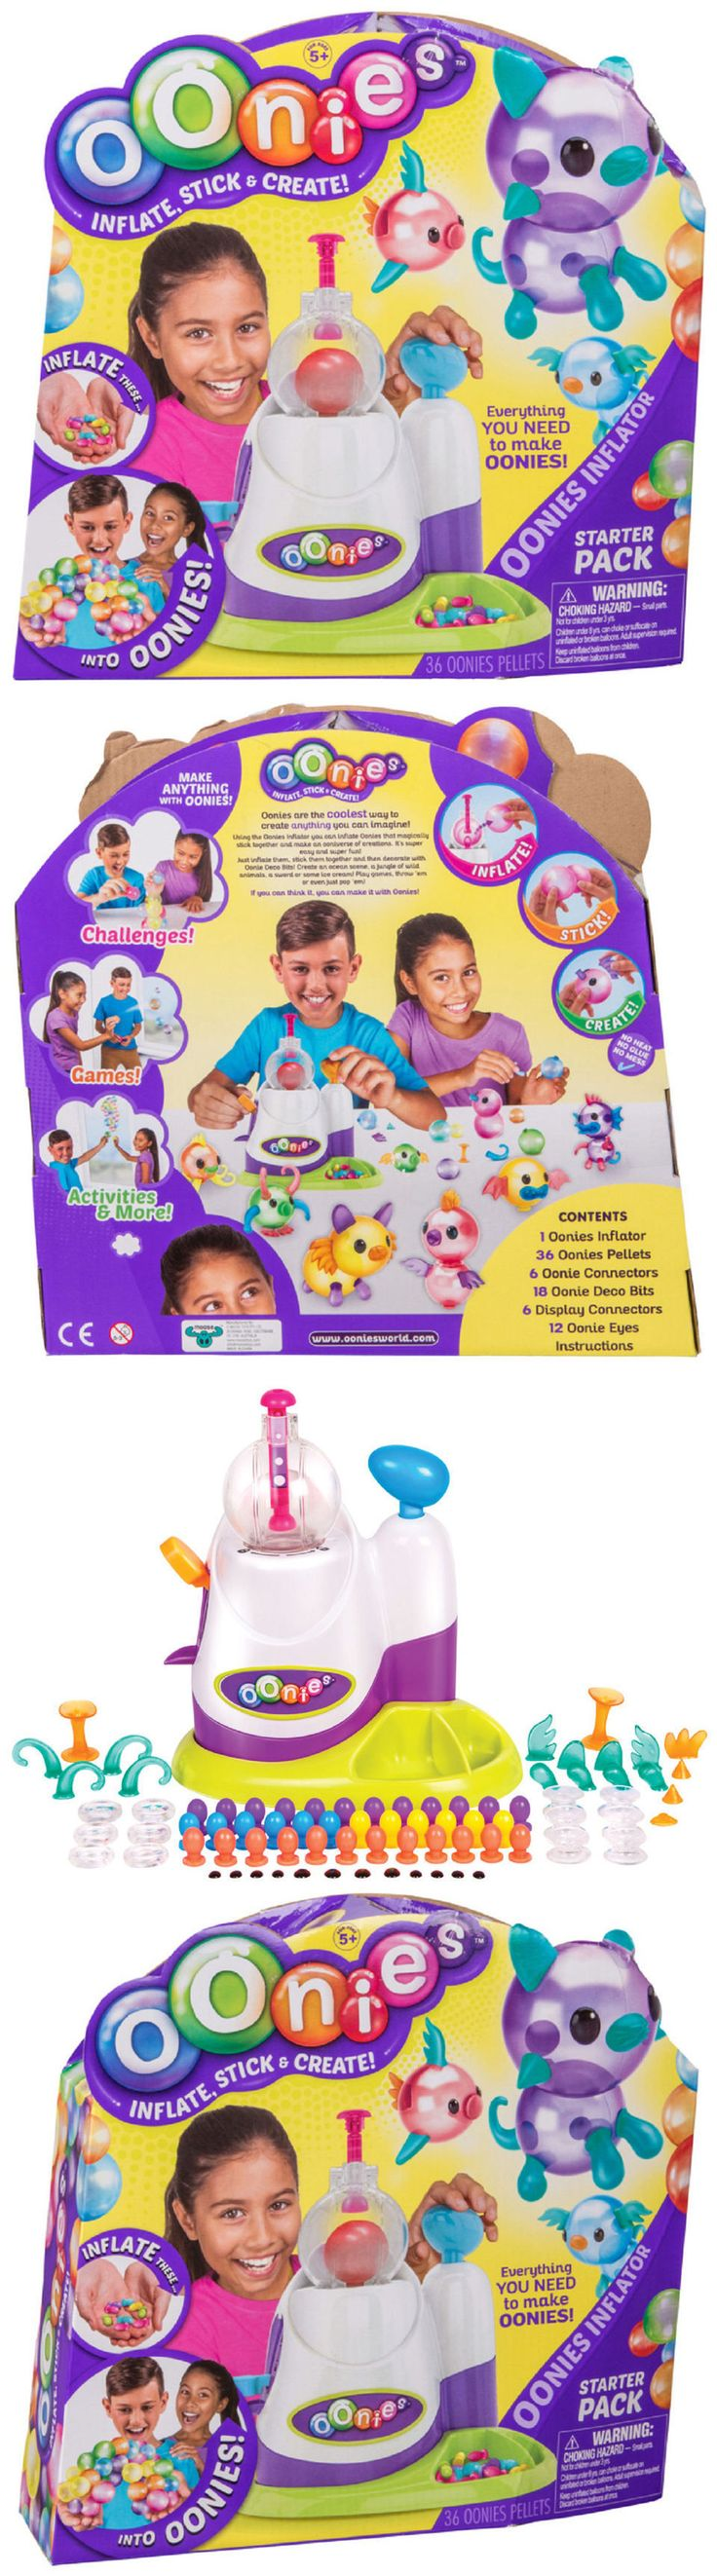 Other Kids Crafts 28145: Oonies Inflator Starter Kit Pack Inflate Balls Bubbles Balloons Moose Toys 2017 -> BUY IT NOW ONLY: $49.99 on eBay!